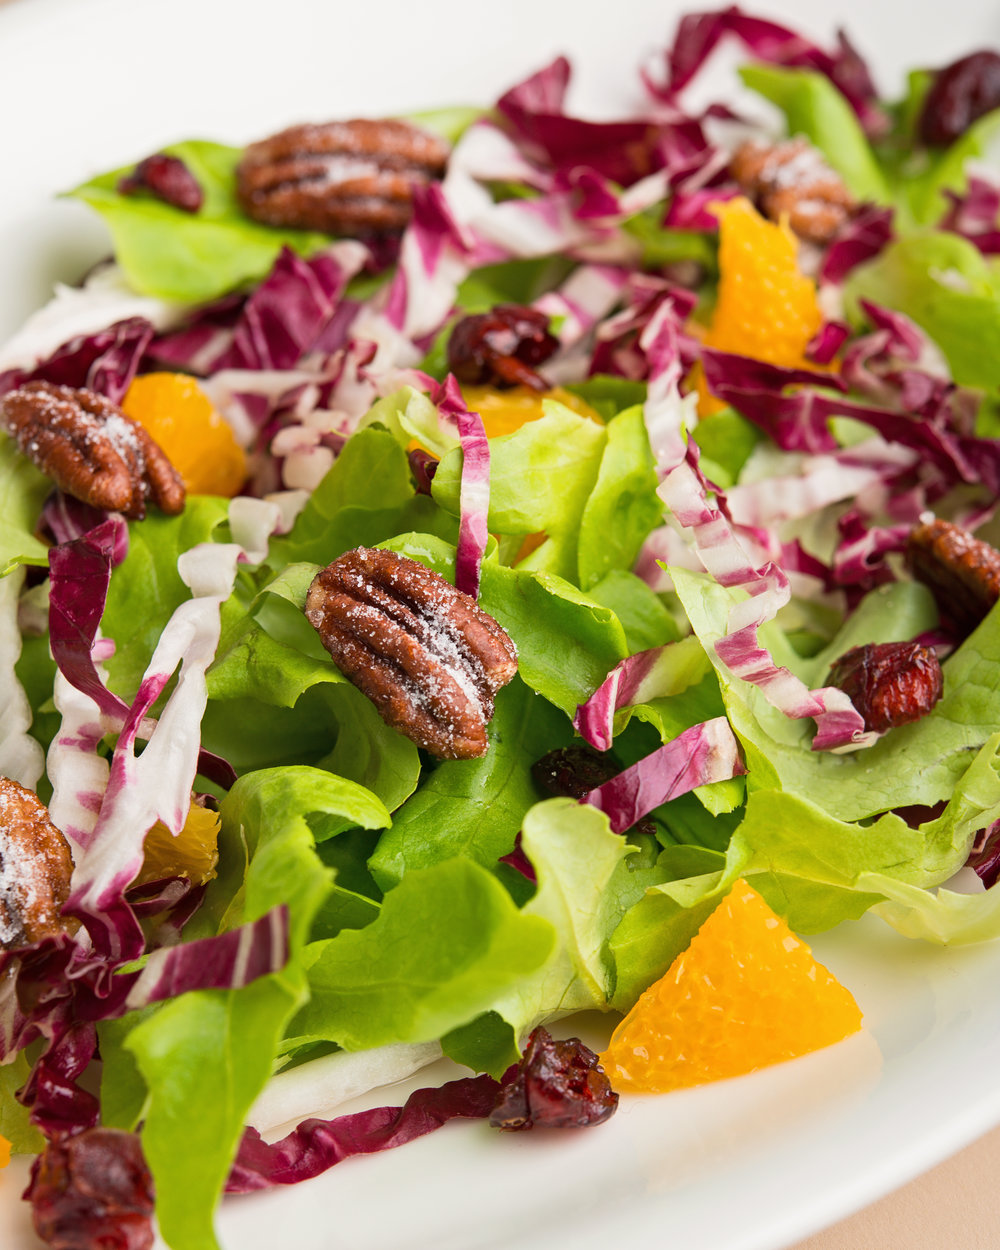 Honeyed pecan salad         with tangerine                   vinaigrette